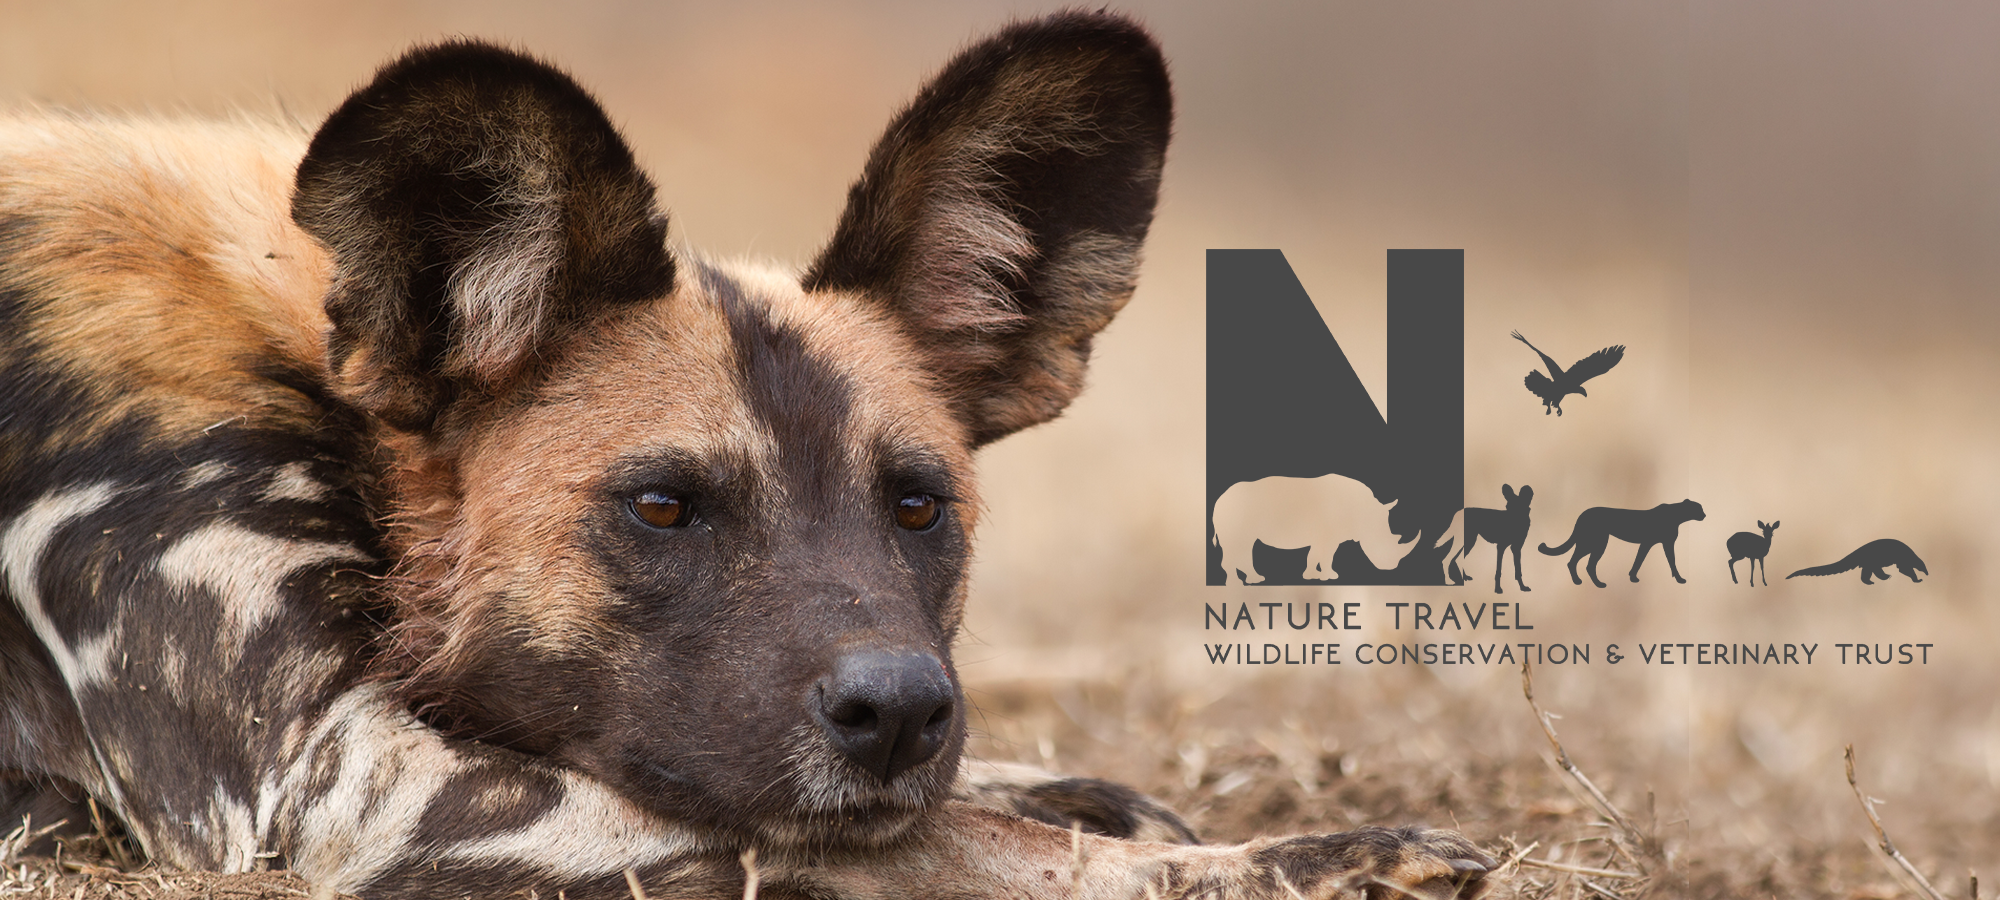 Nature Travel Wildlife Conservation & Veterinary Trust